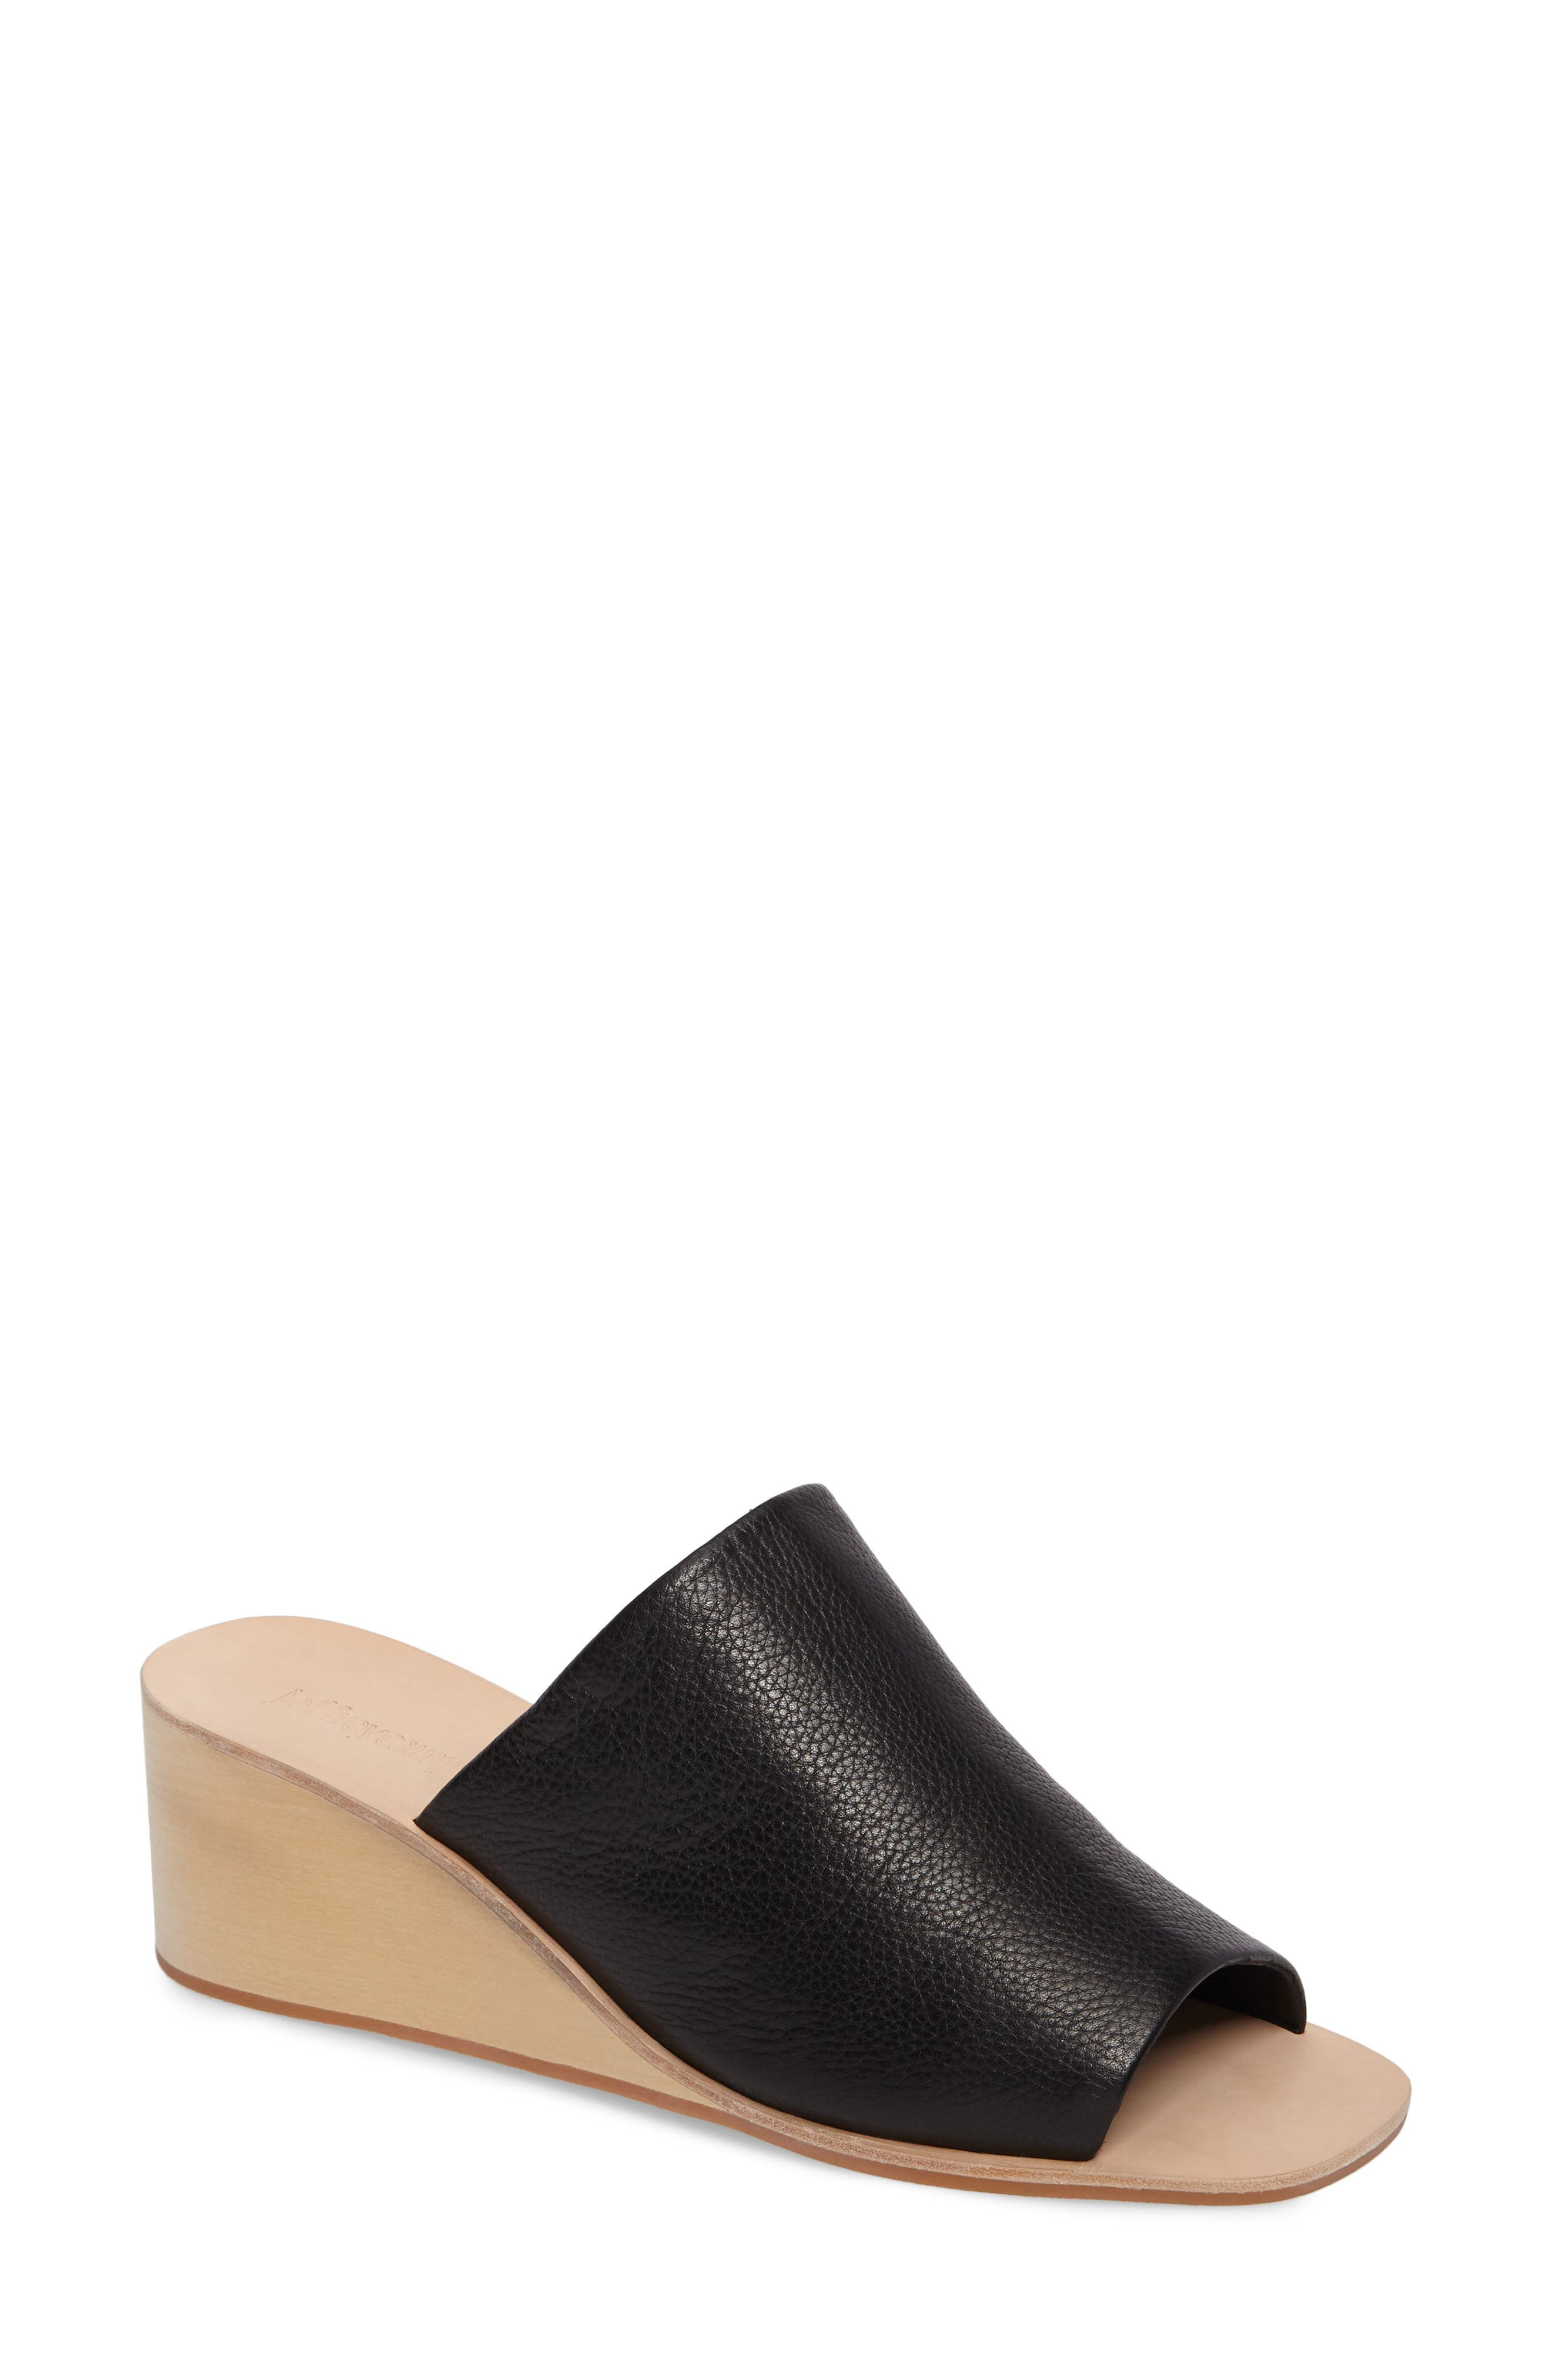 Jeffrey Campbell Willow Wedge Sandal (Women)